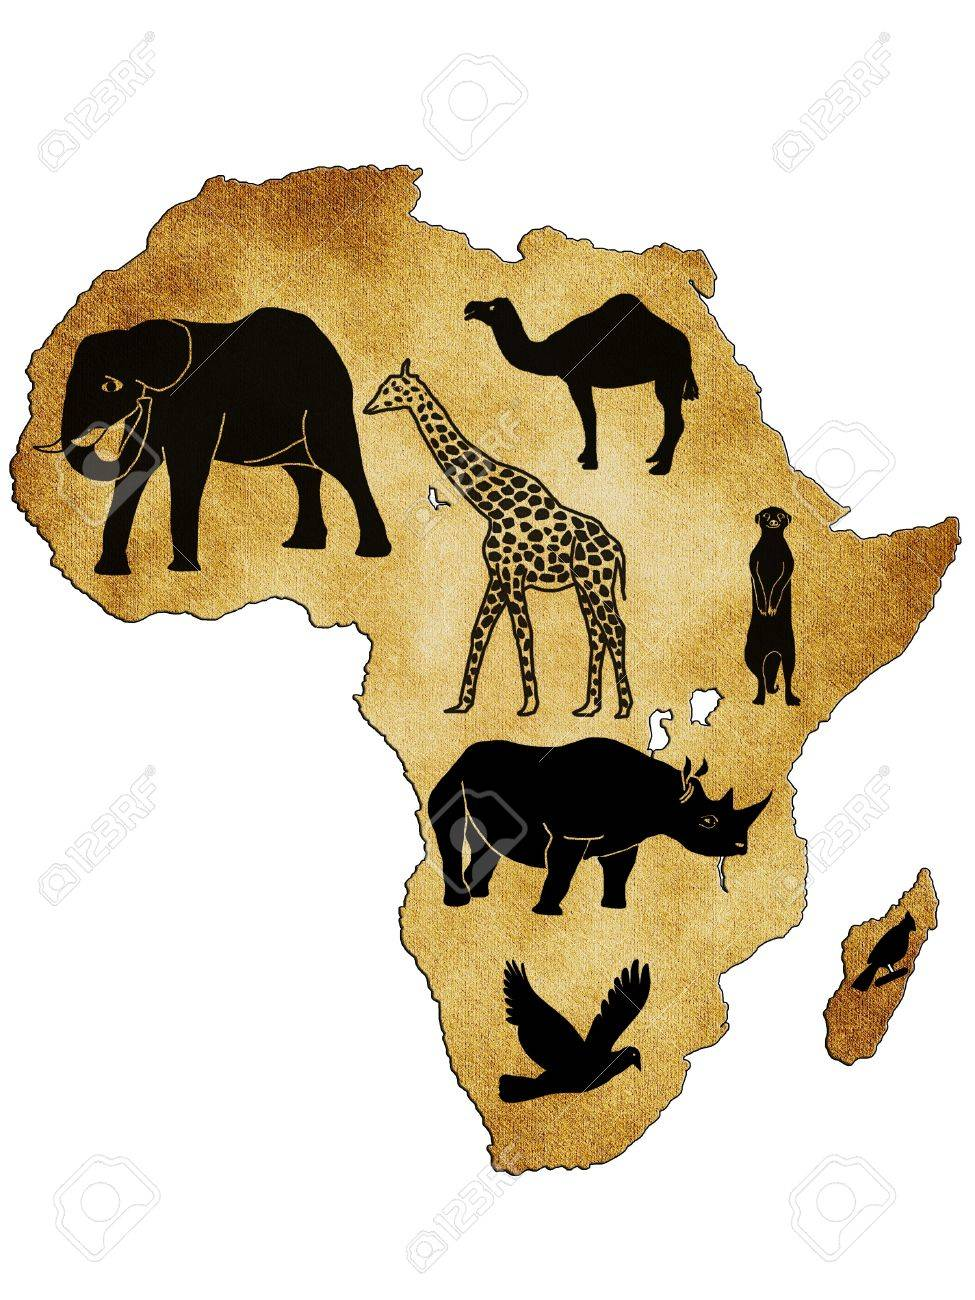 Map Of Africa With Pictures Of Animals Stock Photo, Picture And